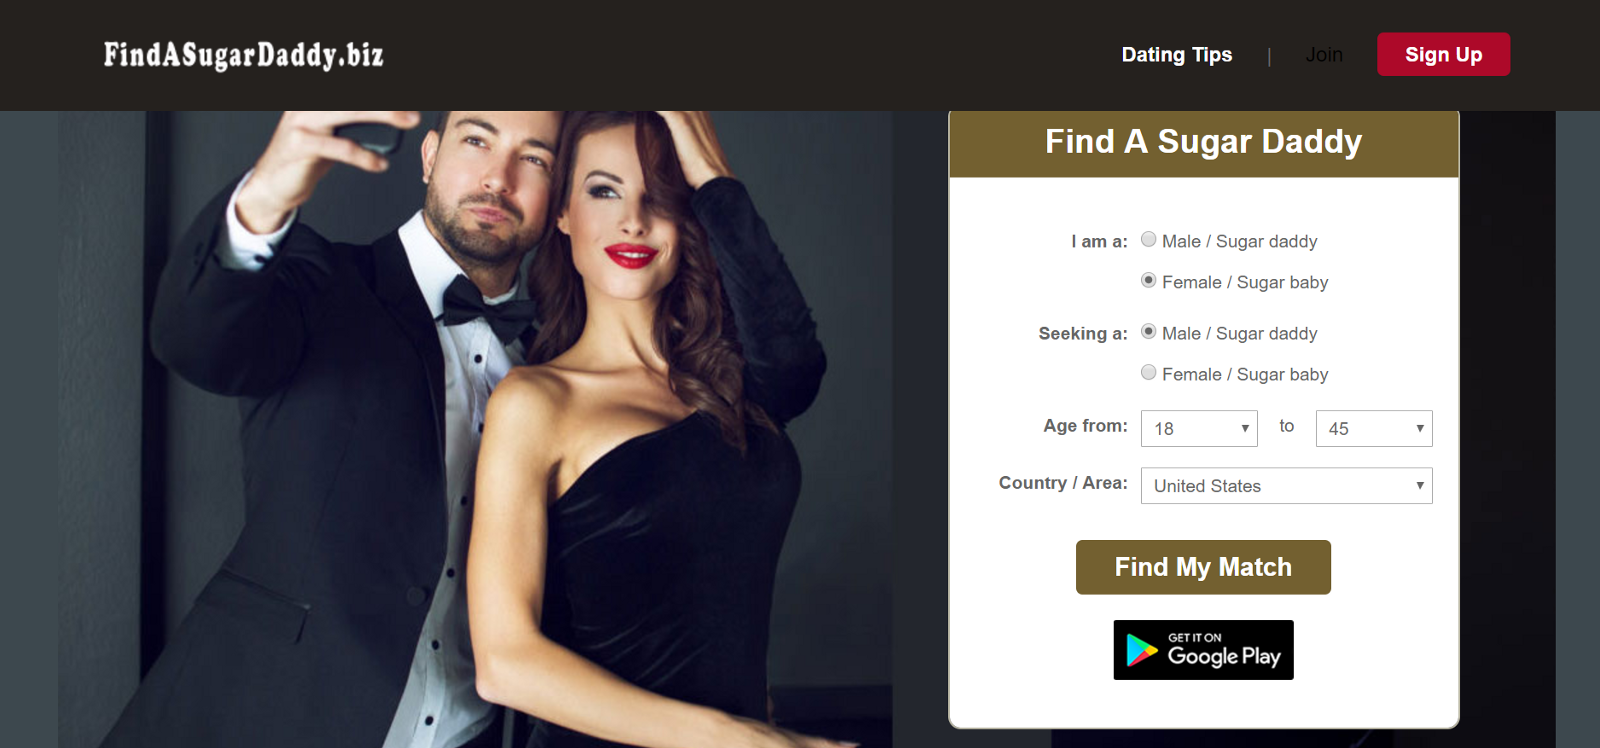 asugar dating Sugar mama dating site in addition, many people say that to enter the online dating is both fun and convenience many online dating sites respect the privacy of their members and protect against third party websites or even with other online members who were a threat.